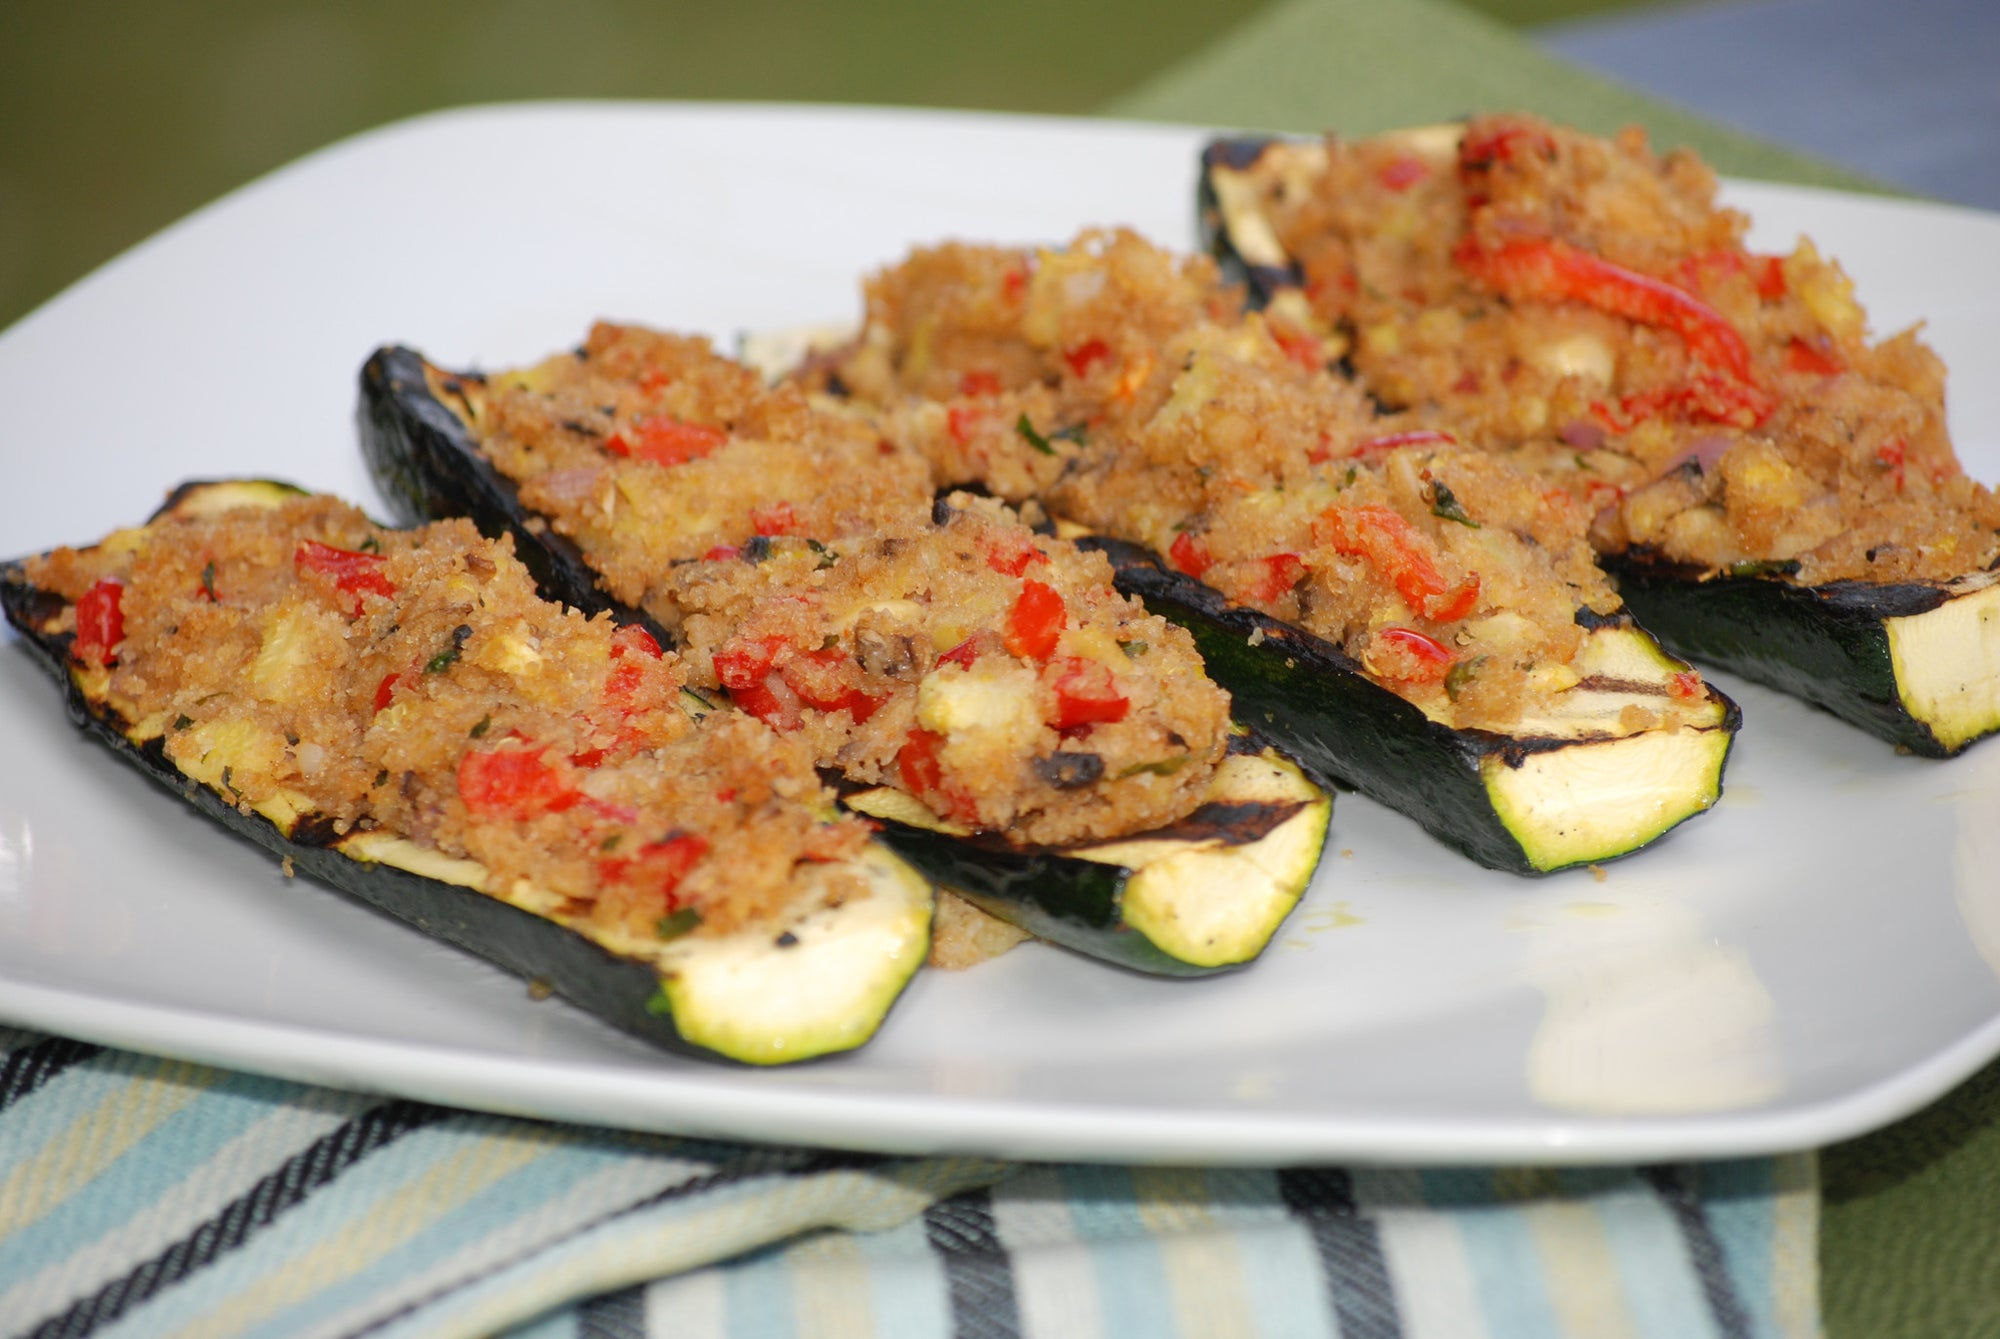 Grilled Gluten-Free Zucchini Boats with Goat Cheese